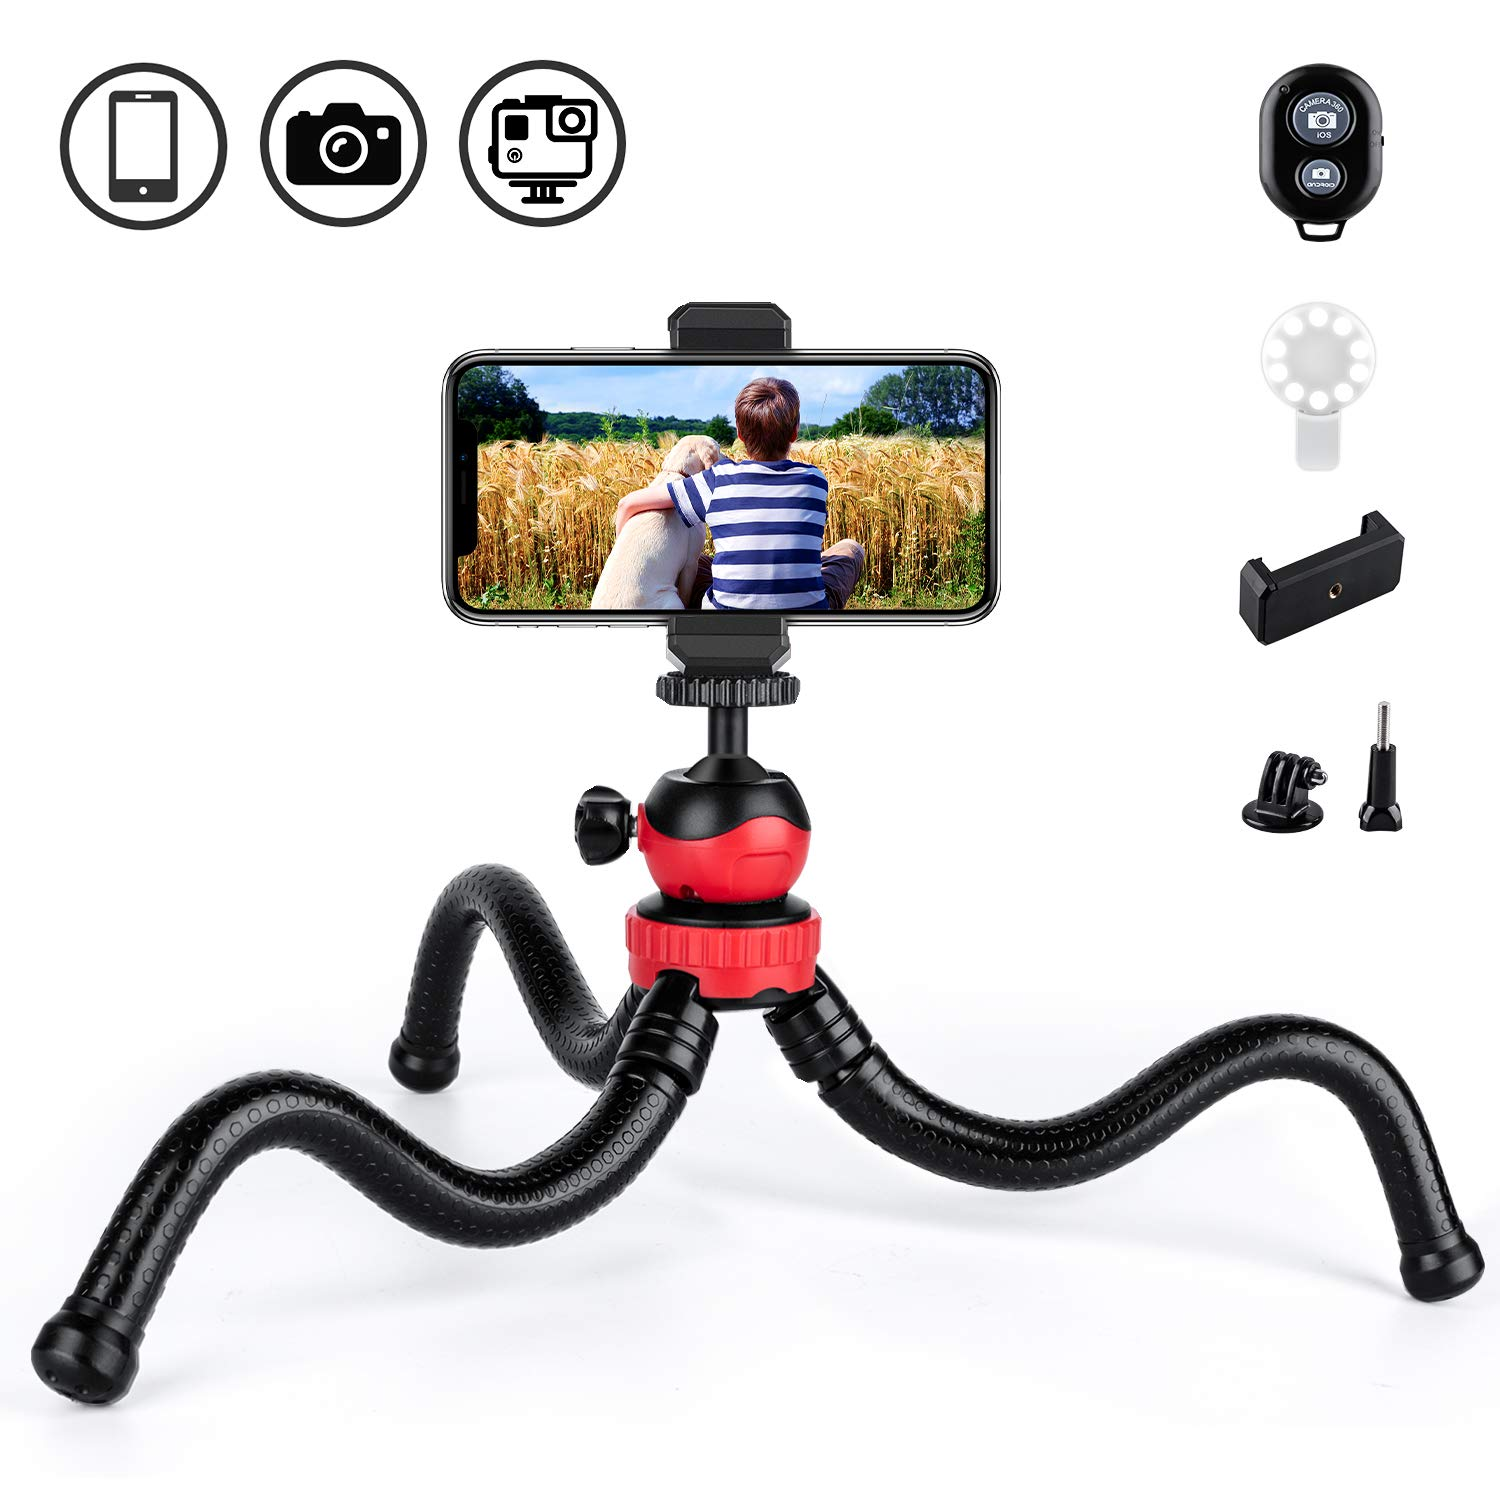 JOYHILL Phone Tripod, Vlogging Tripod, 12'' Flexible Tripod with Wireless Remote, Compatible with iPhone/Android, Anti-Crack Camera Tripod for Gopro by JOYHILL